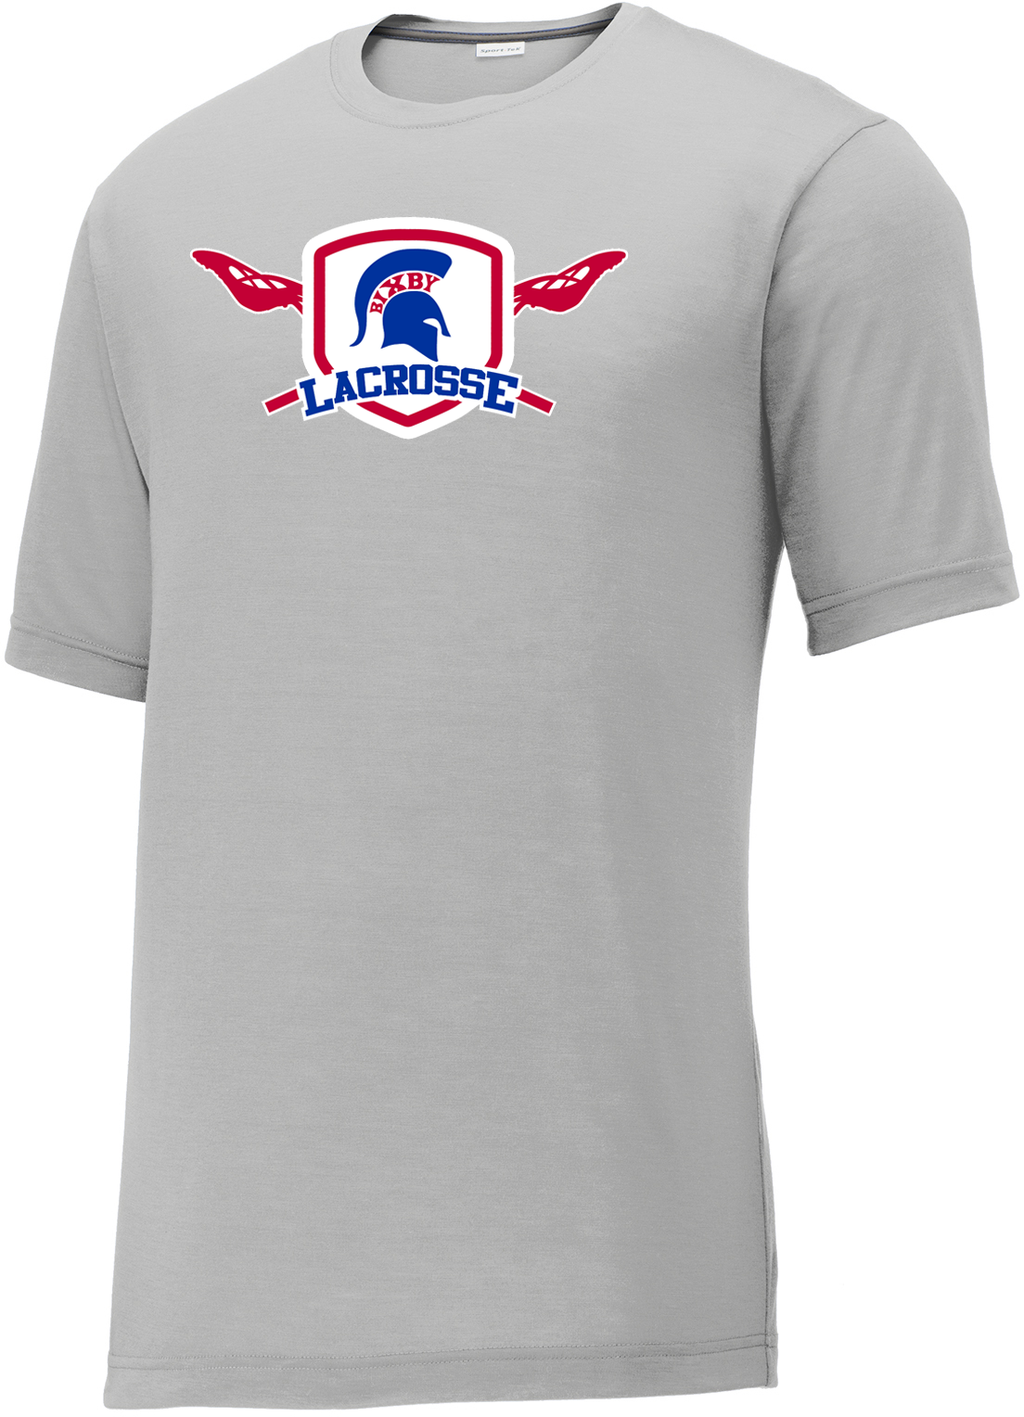 Bixby Lacrosse Silver CottonTouch Performance T-Shirt